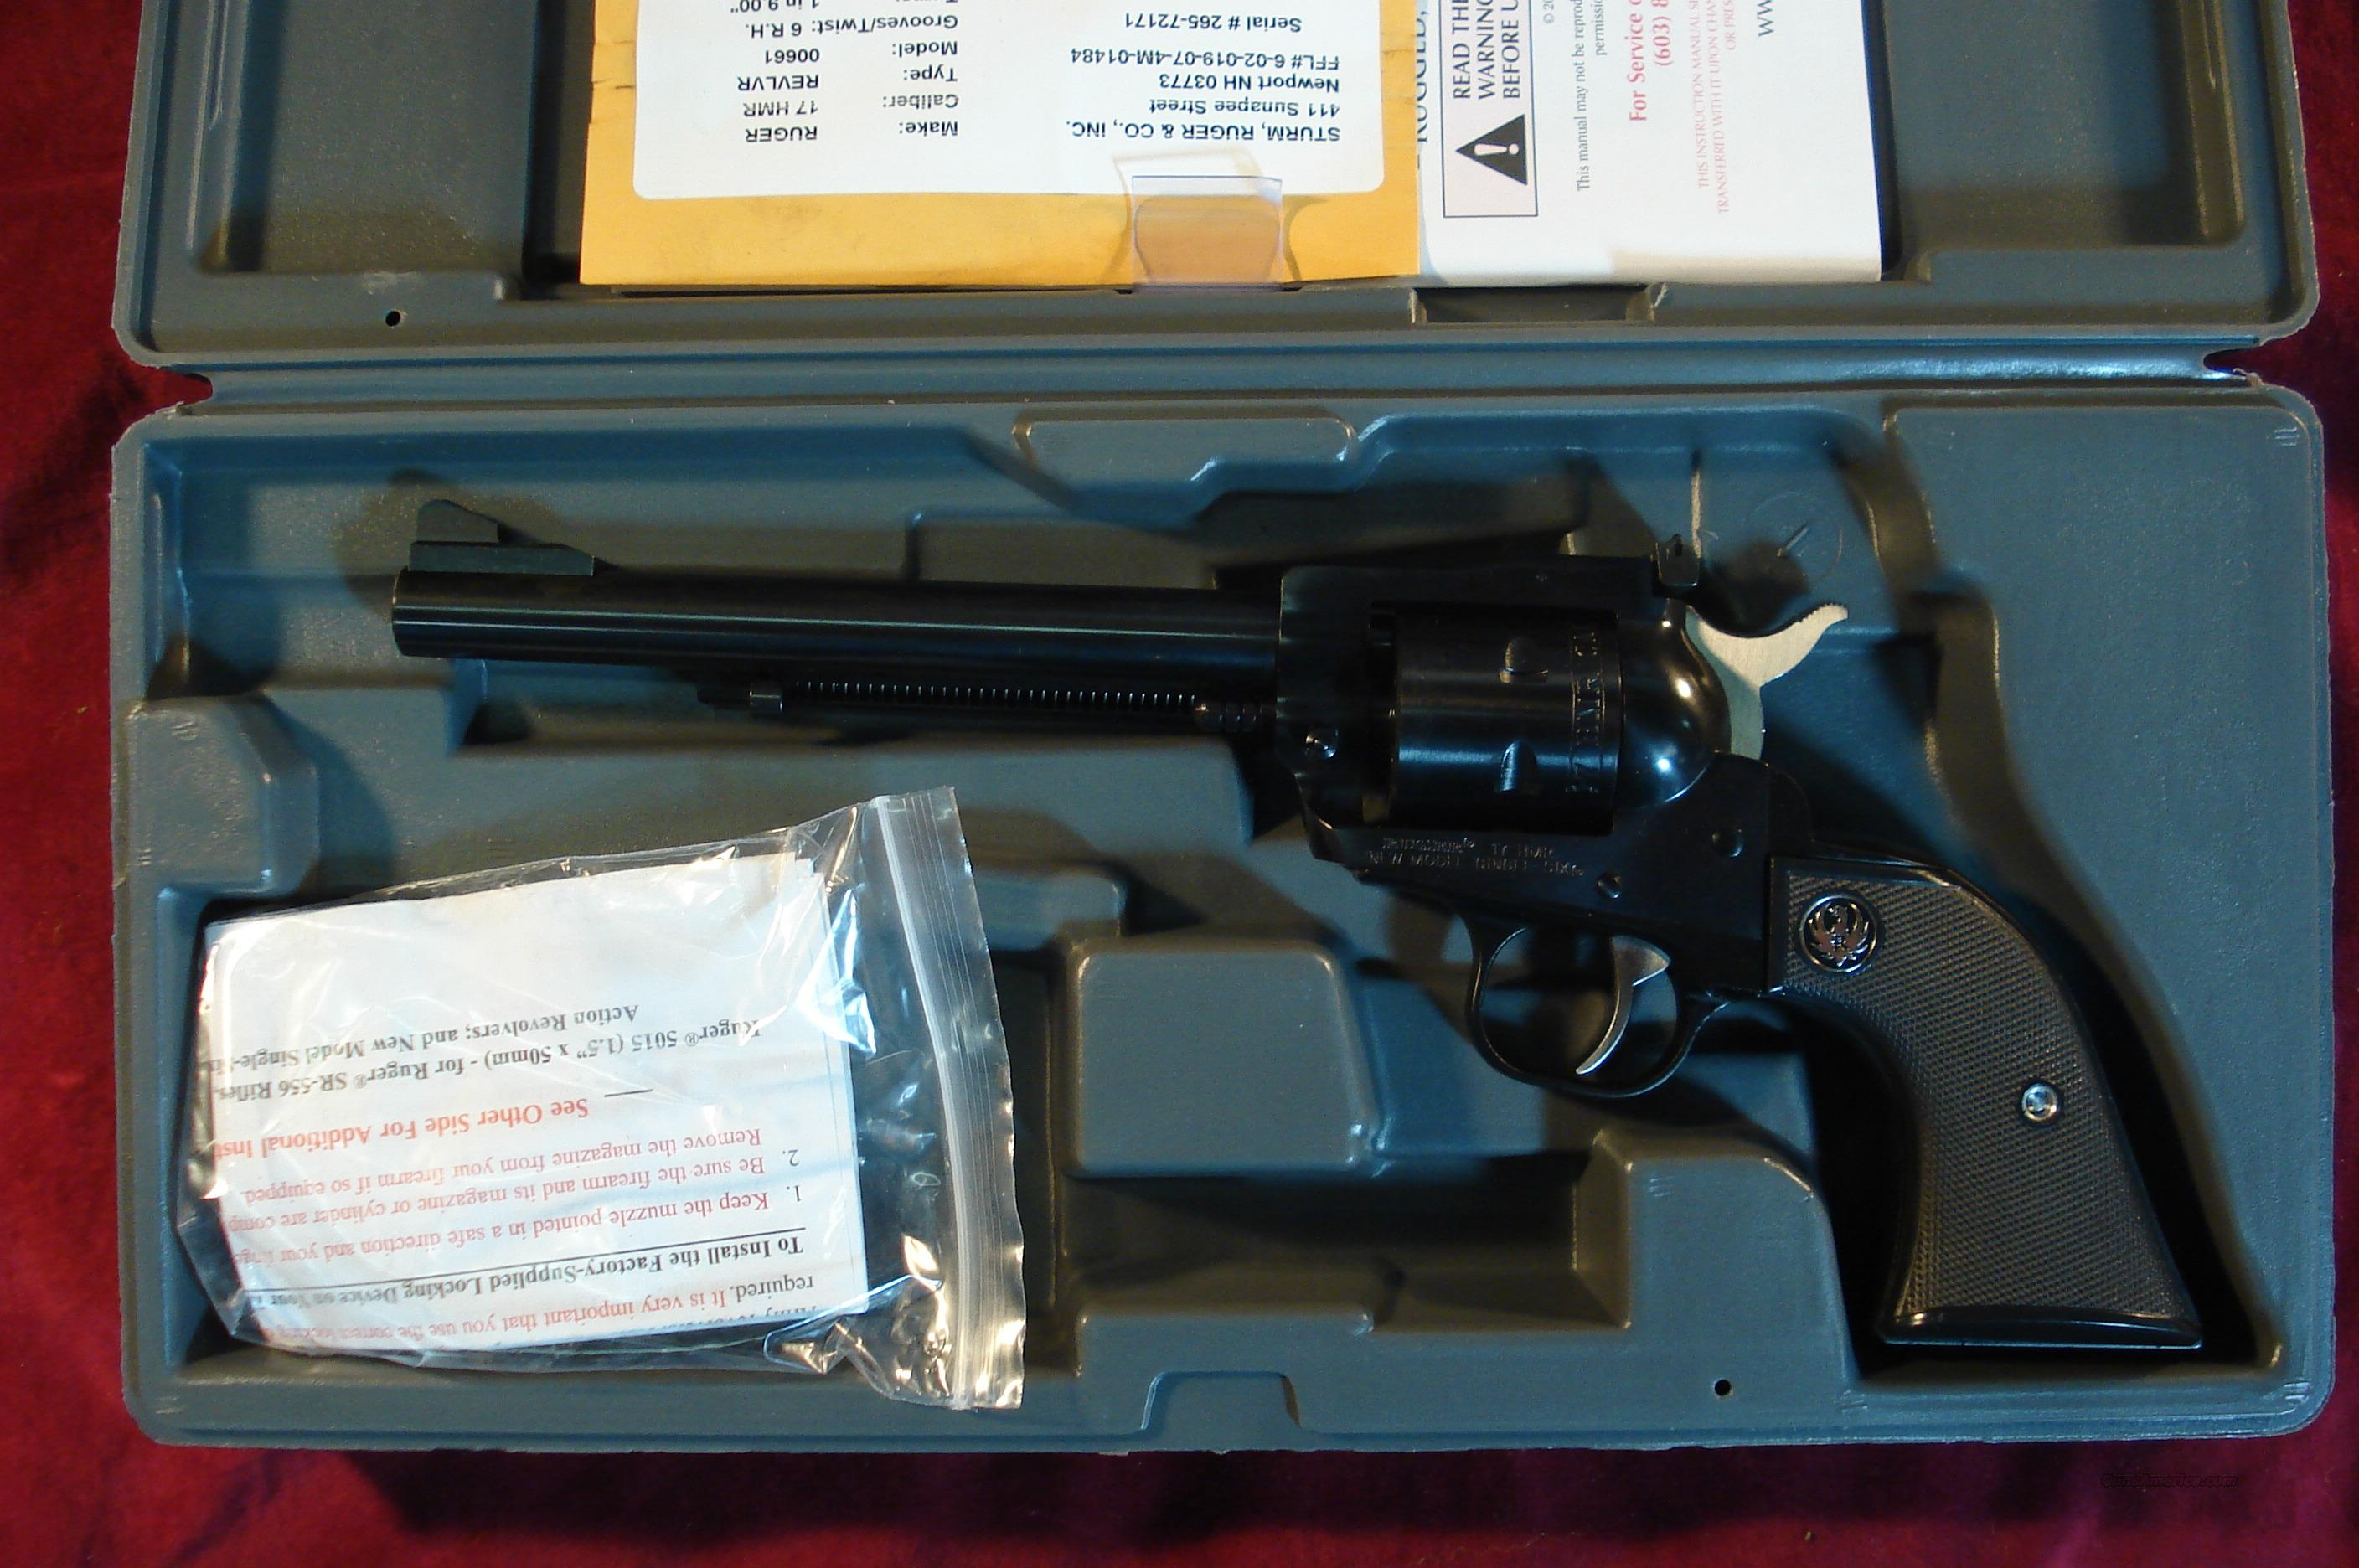 "RUGER .17HMR SINGLE-SIX BLUE 6.5"" NEW (NR-6-17)  (00661)  Guns > Pistols > Ruger Single Action Revolvers > Single Six Type"